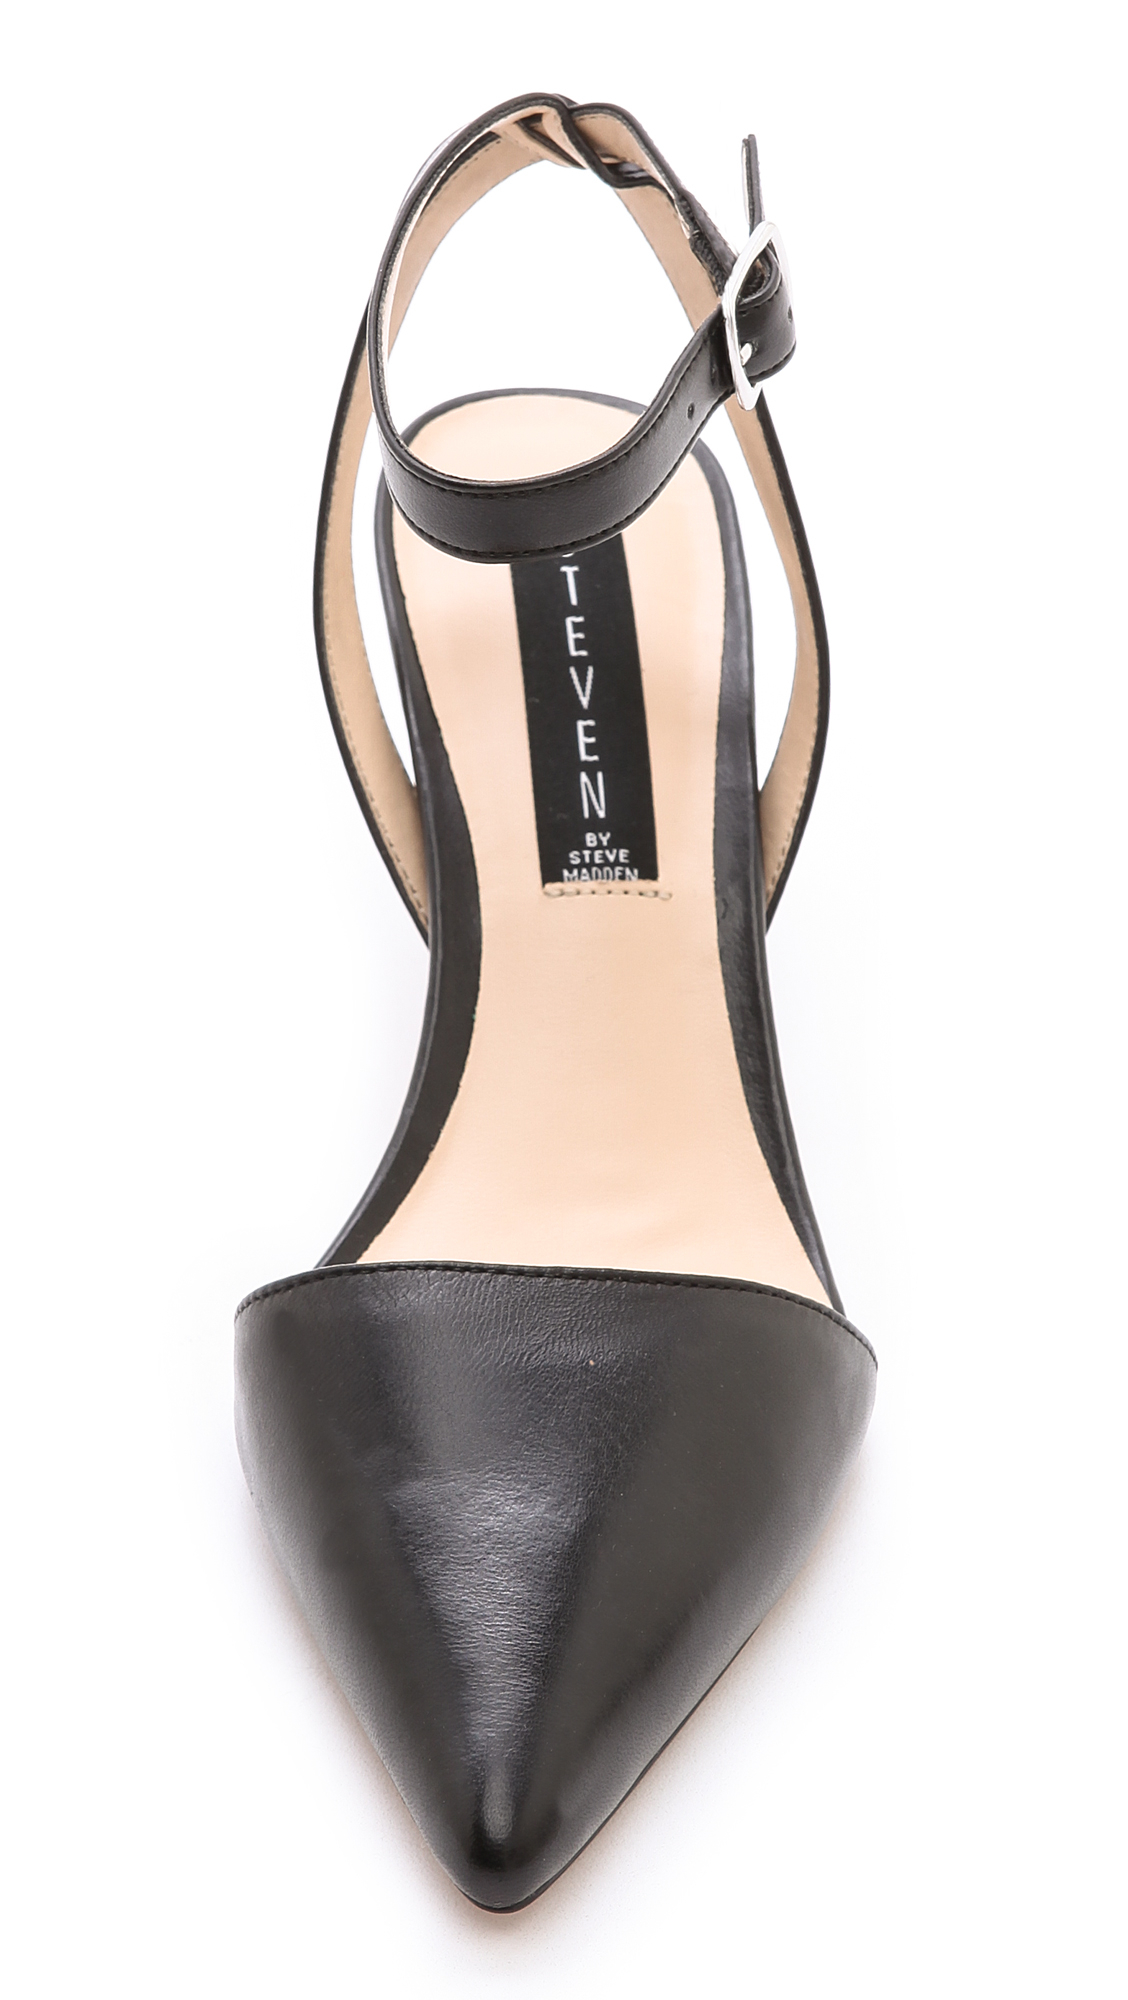 Lyst - Steven by steve madden Caydence Ankle Strap Low Heels in Black